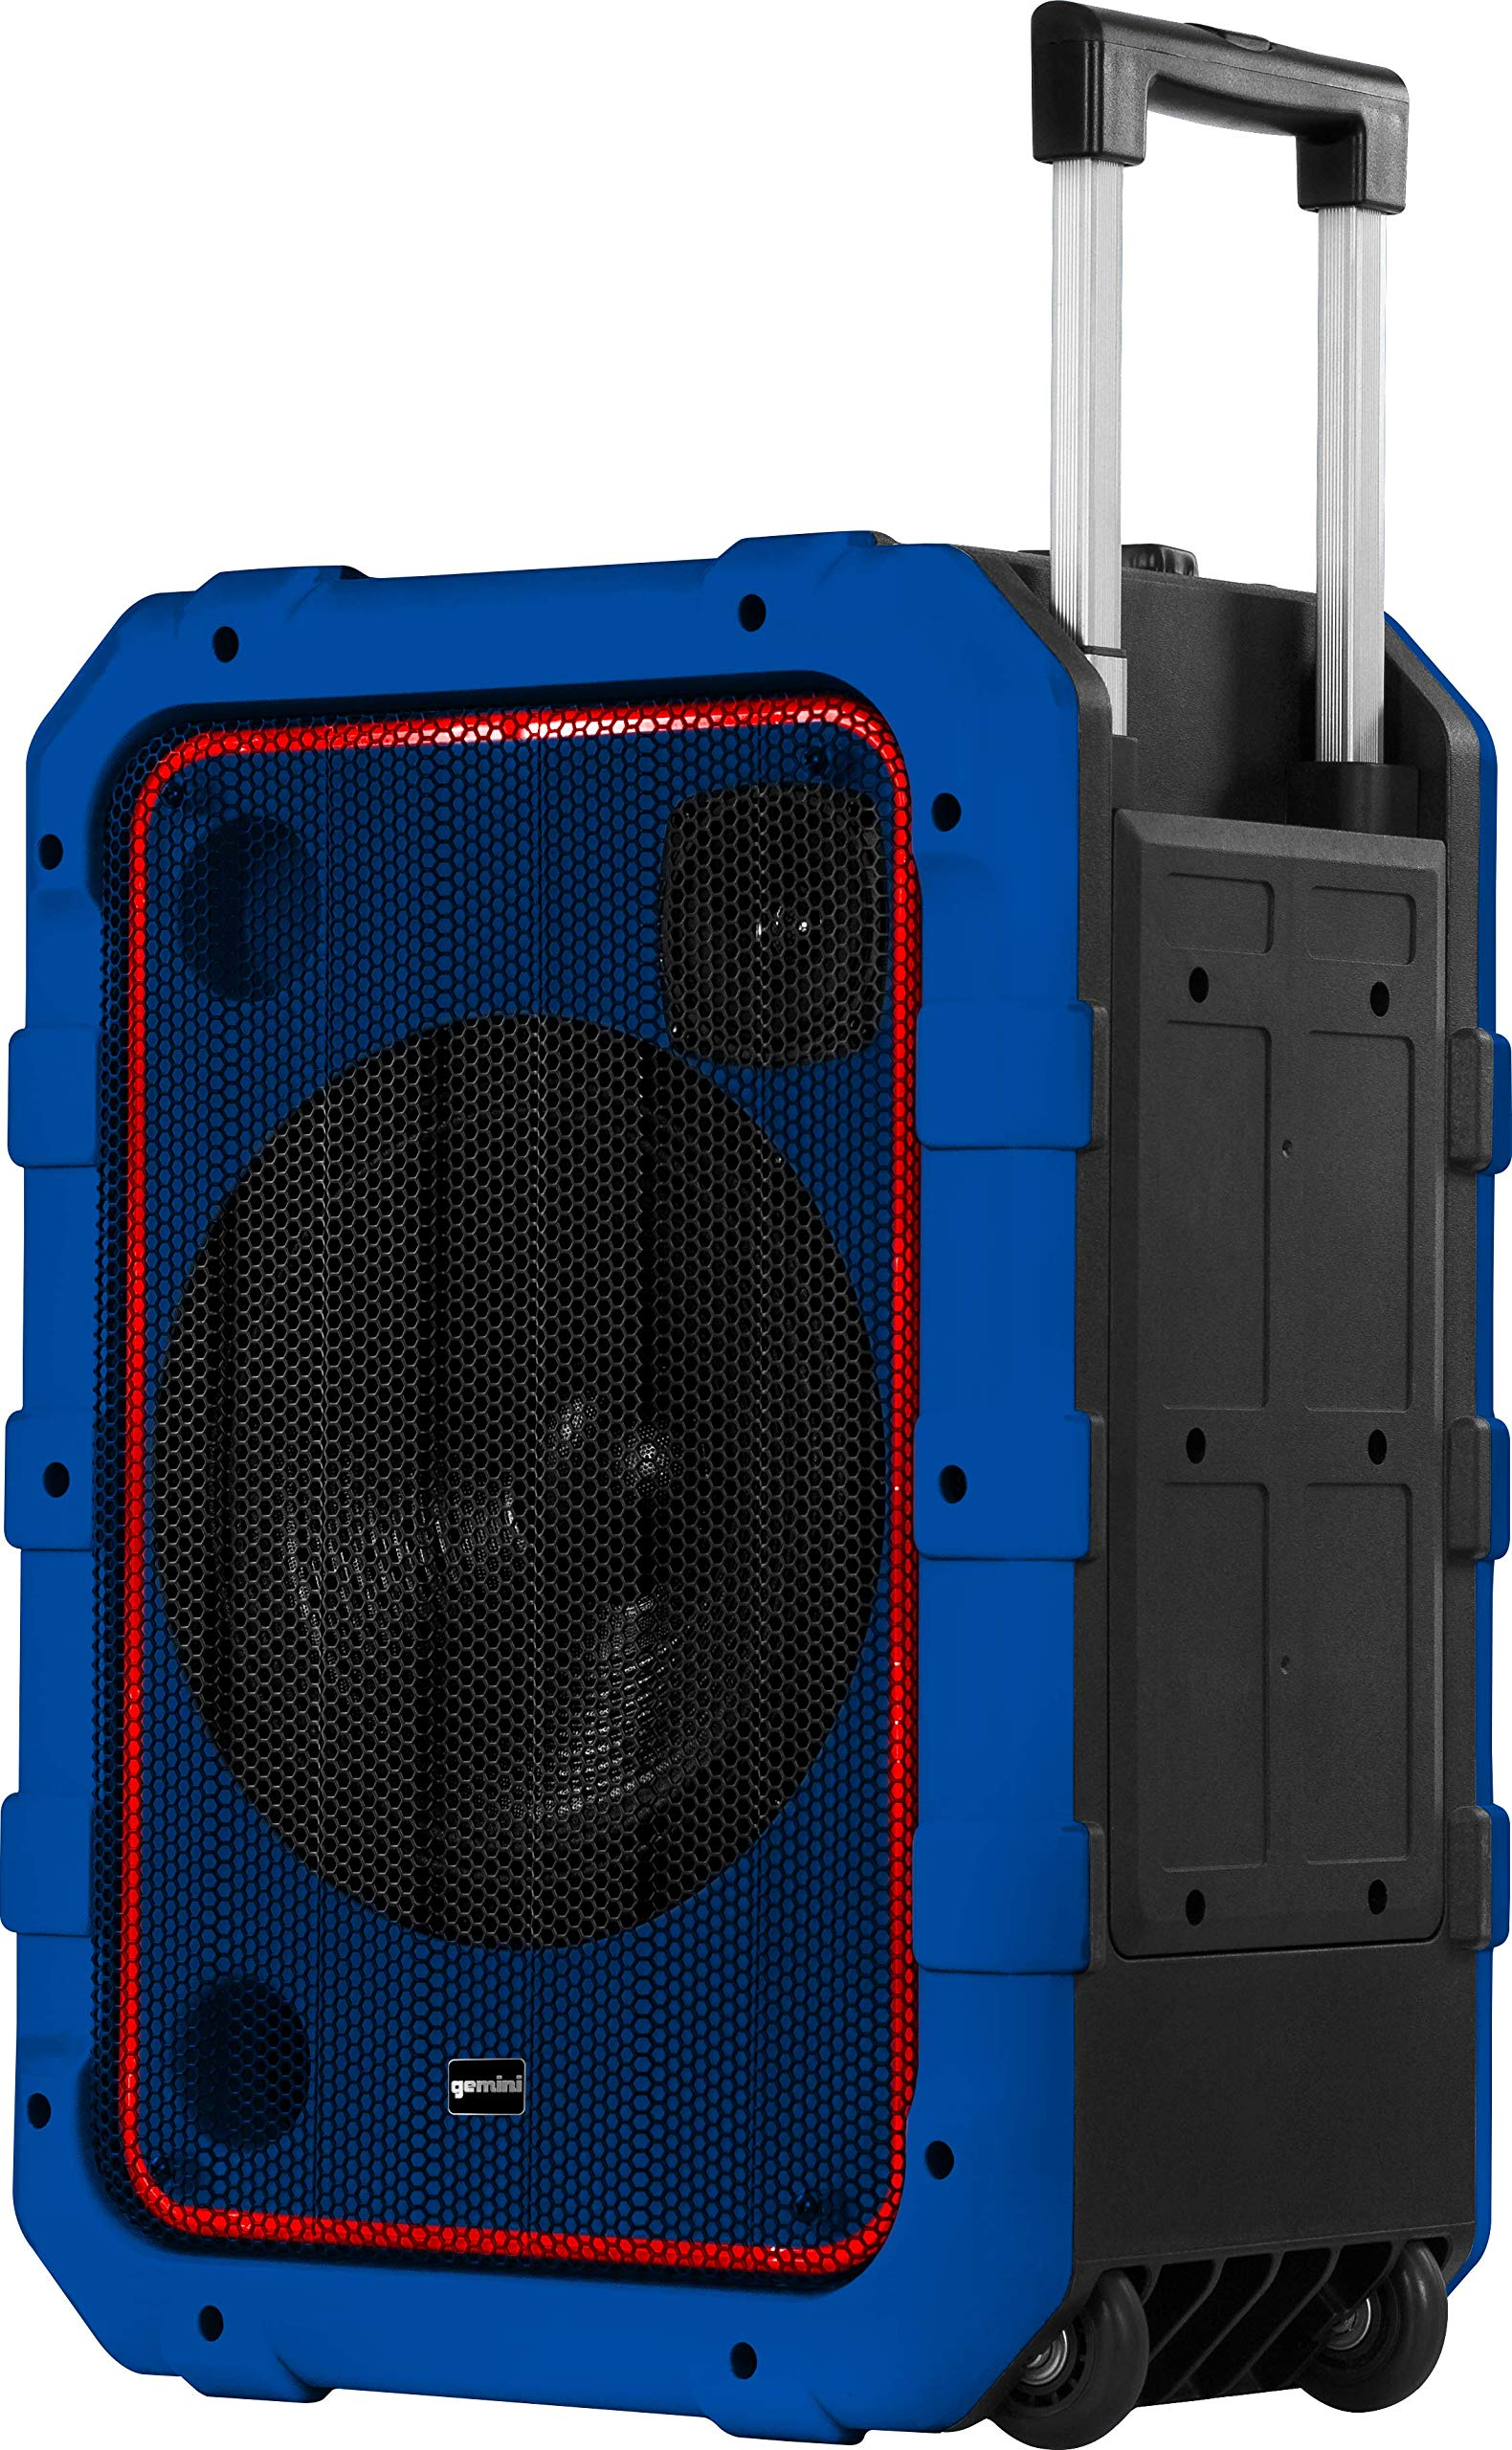 Gemini MPA-2400 10'' Rechargeable Weather-Resistant Trolley Speaker with Bluetooth, LED Light Show, 6 DSP Modes, Microphone and Guitar Inputs, 240W Peak Power, FM Radio, Blue by Gemini